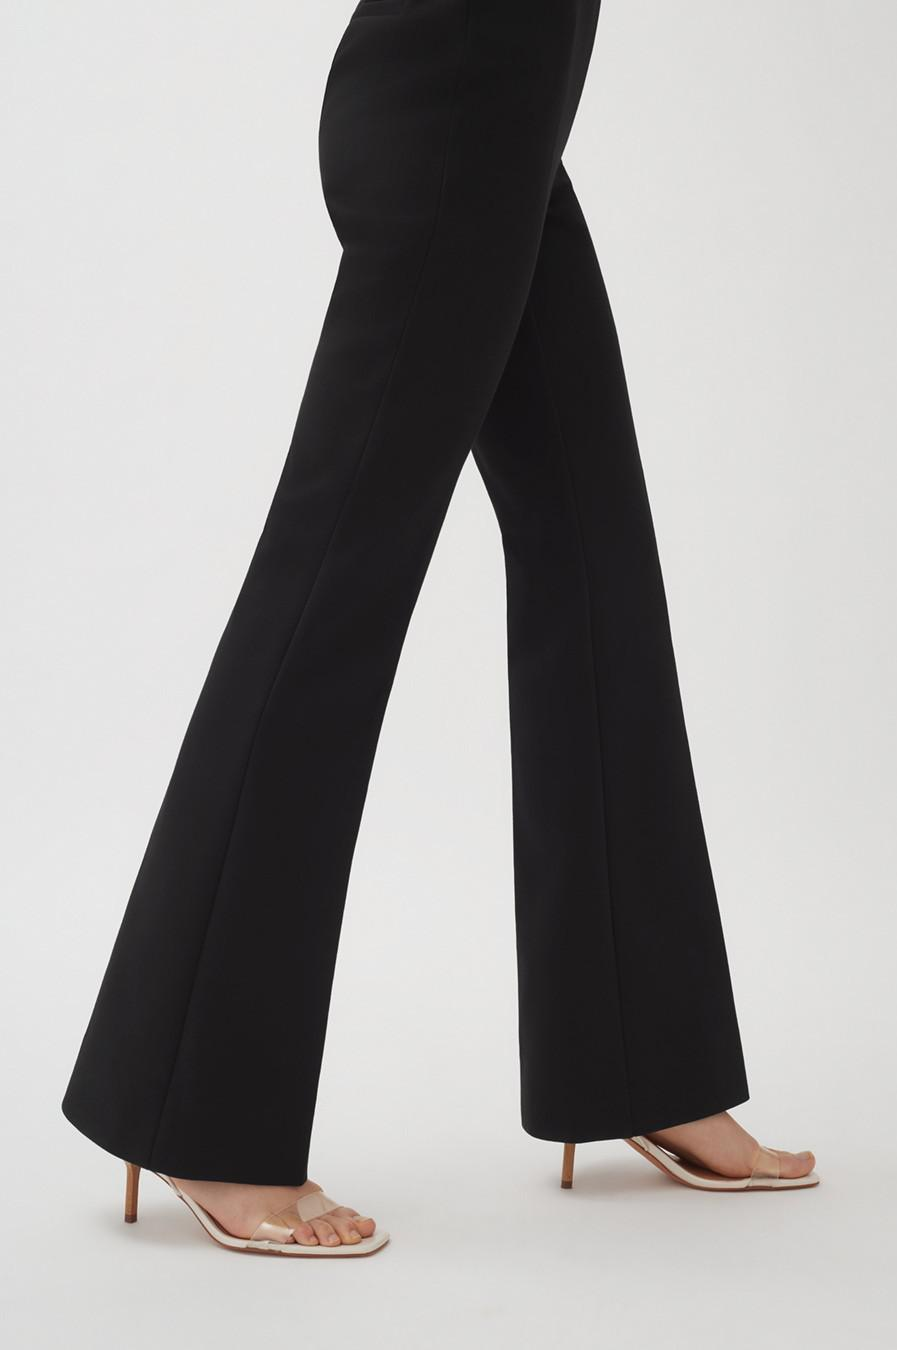 Women's Cotton Twill Flared Pant in Black | Size: 3